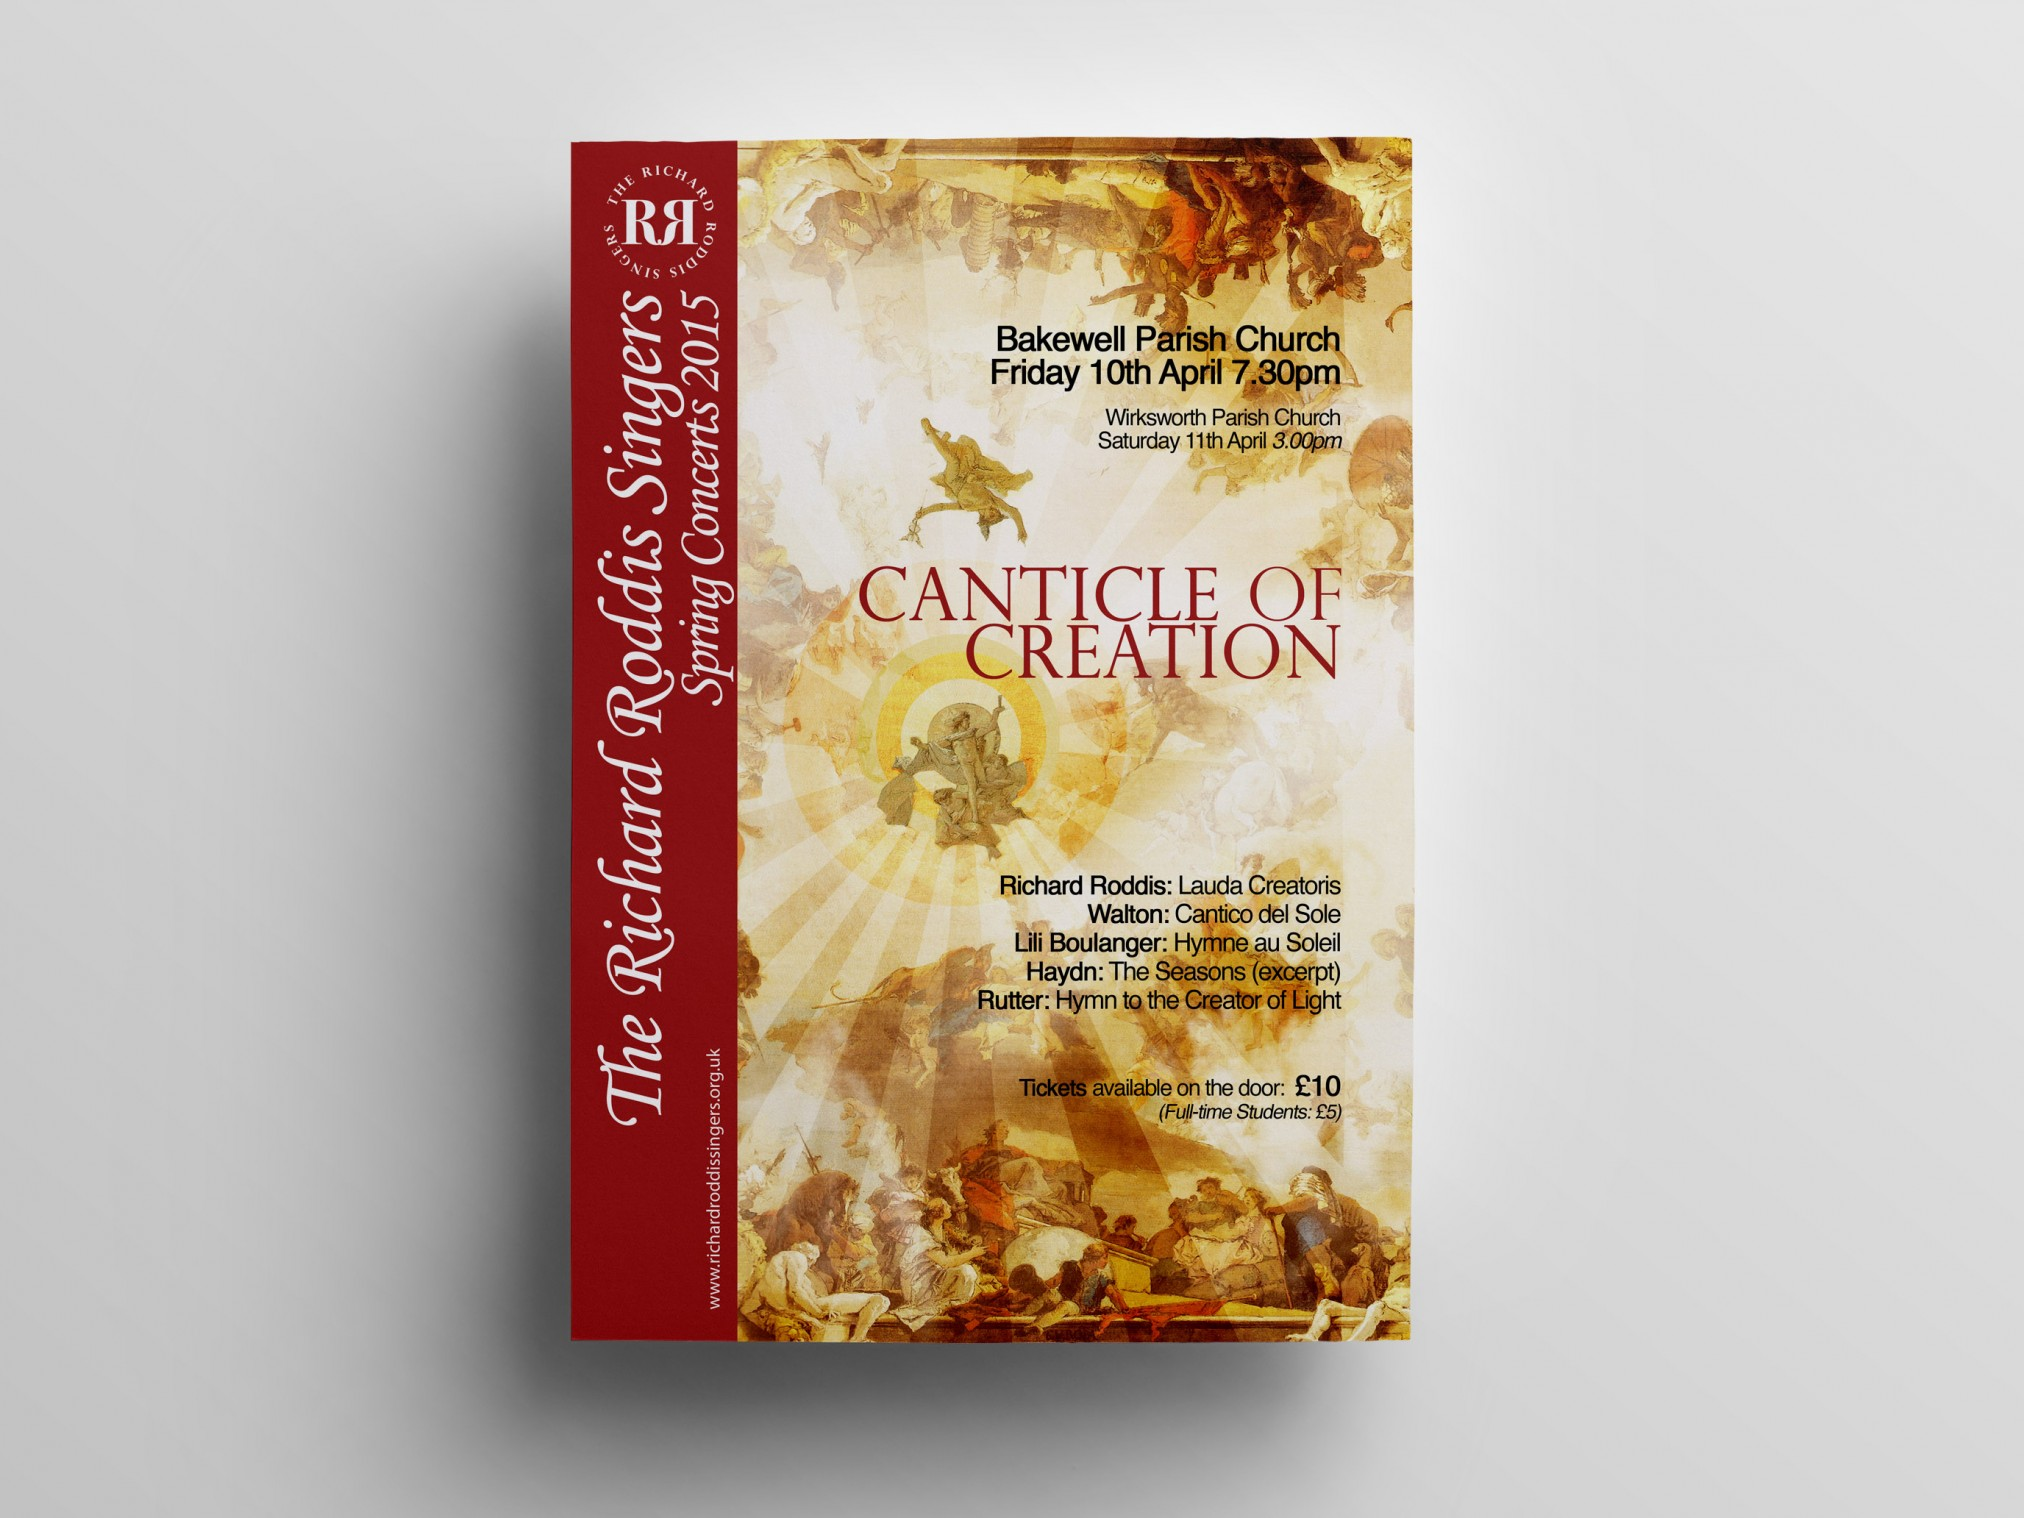 Canticle of Creation RRS